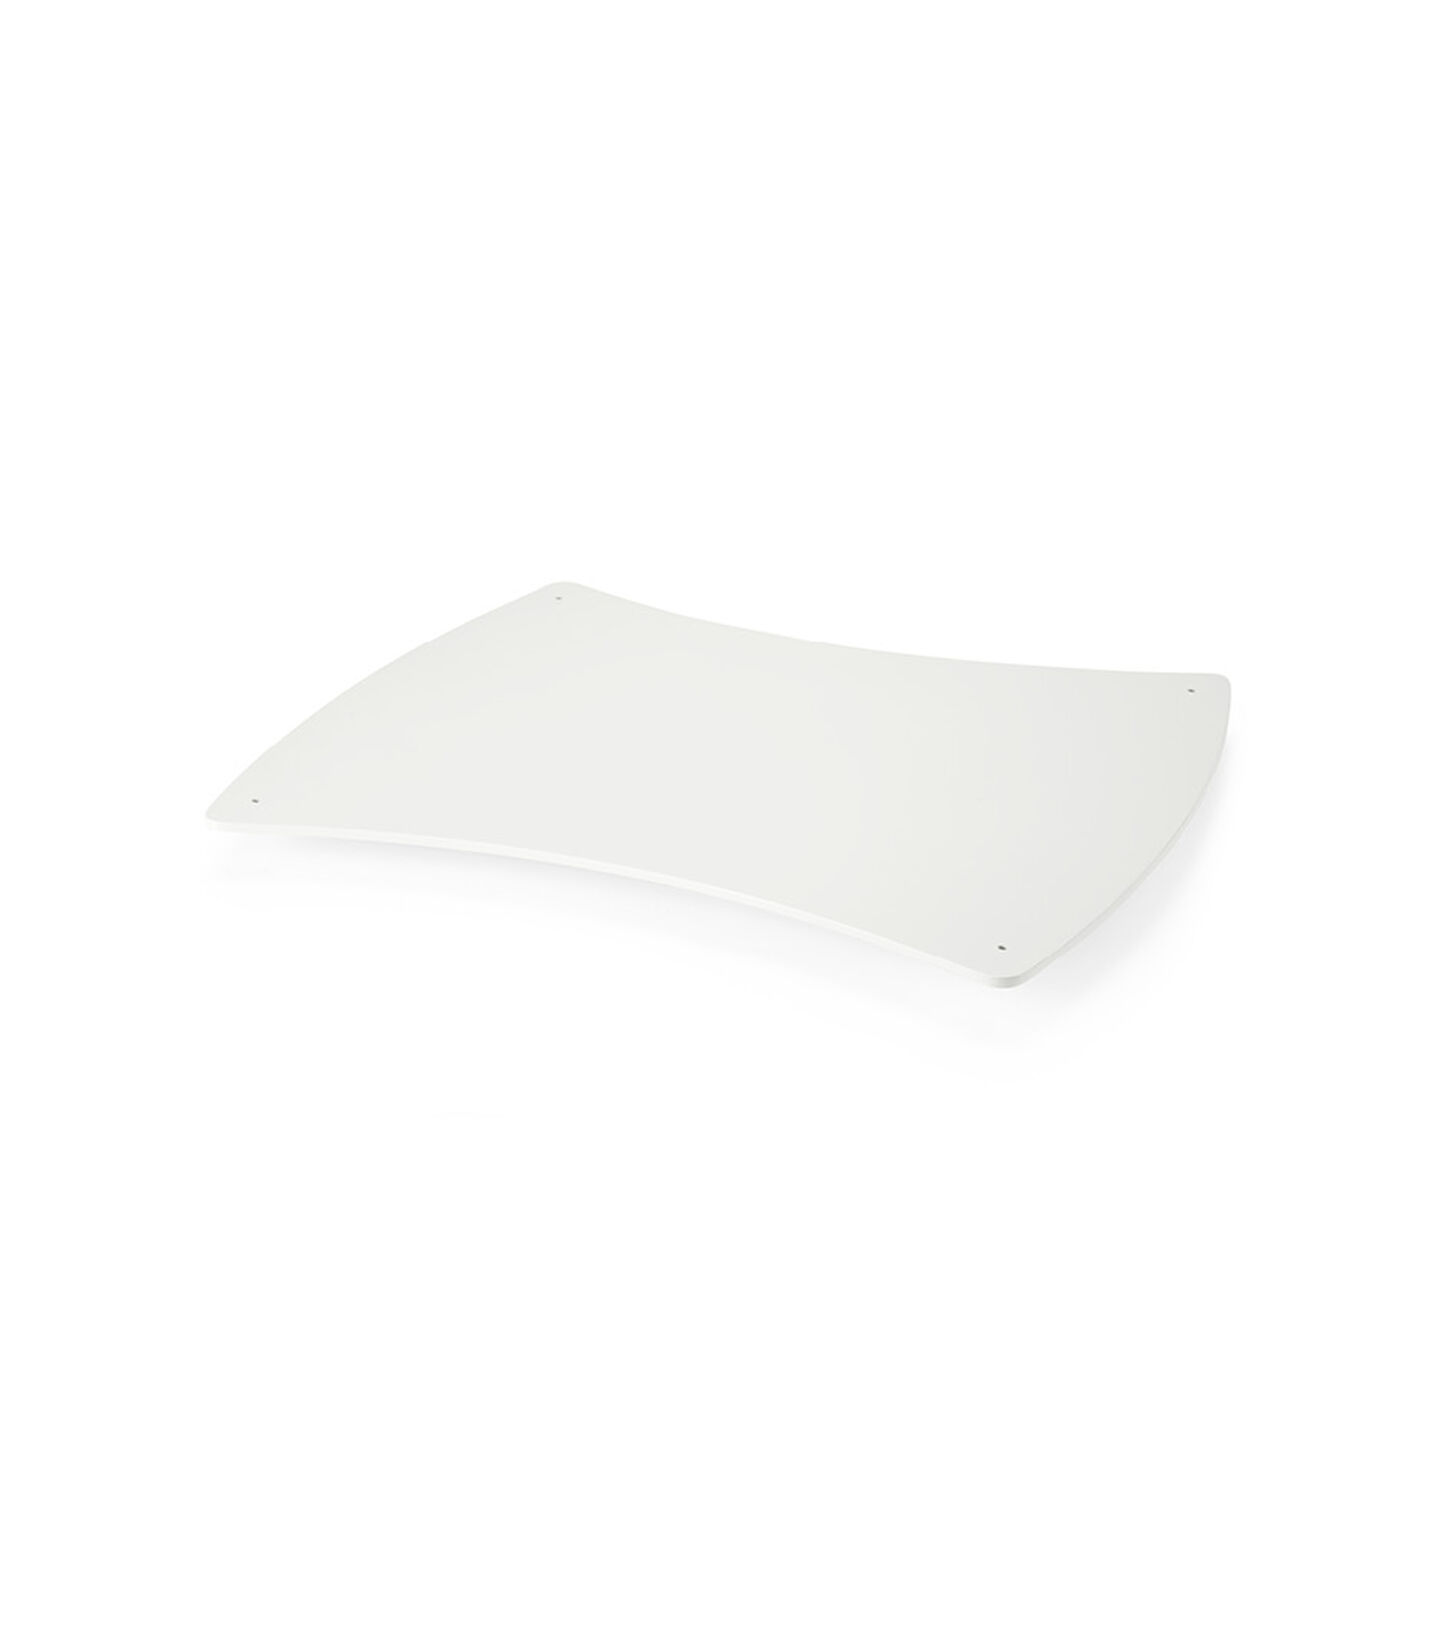 Stokke® Care™ Spare part. 164804 Care 09 Shelf lower White. view 2